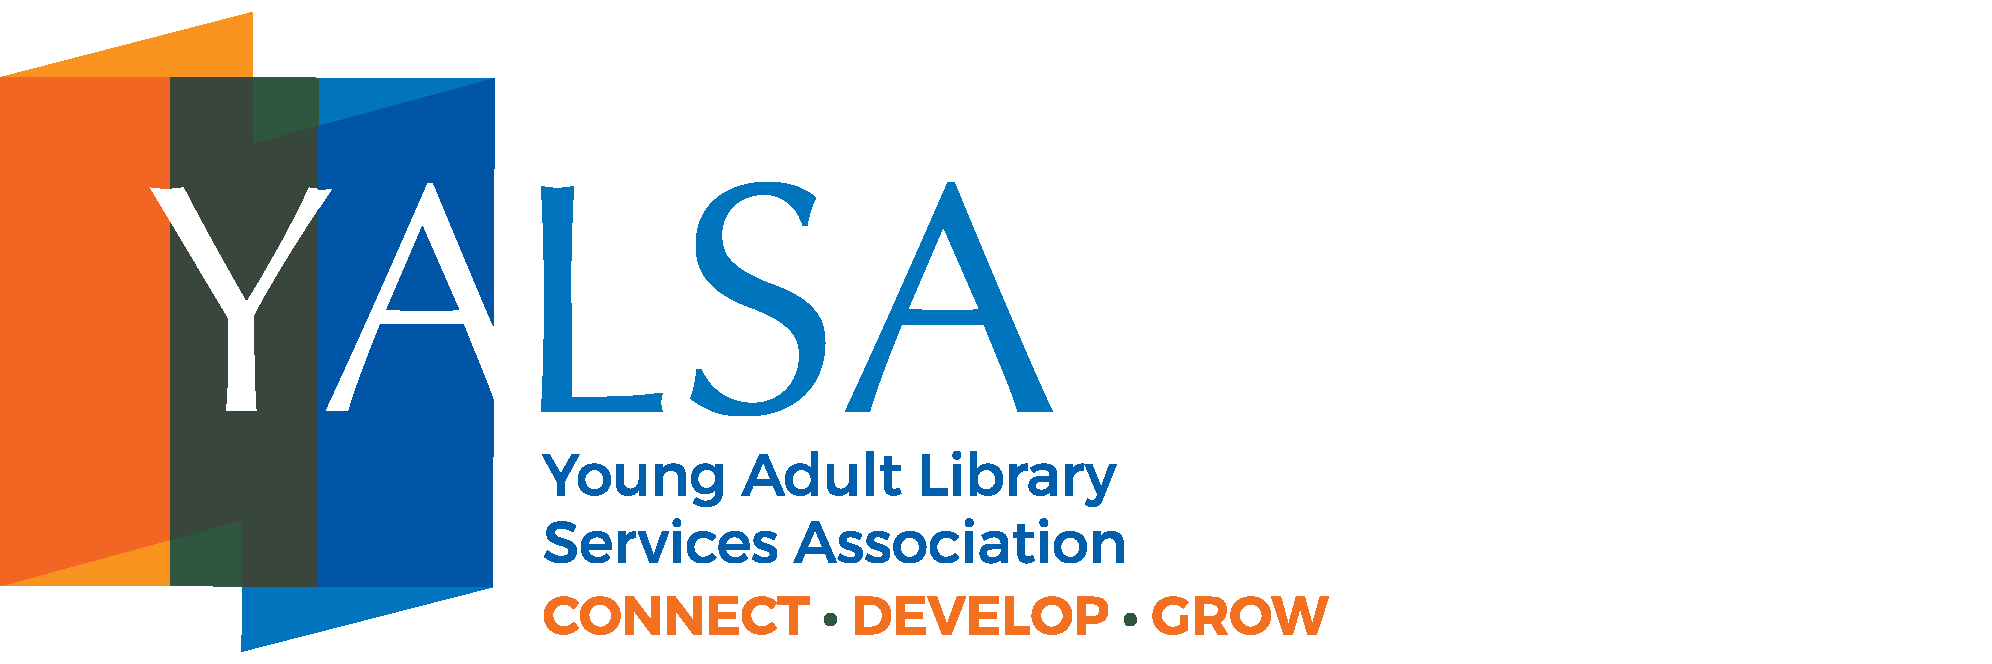 Young Adult Roundtable: Connected Learning